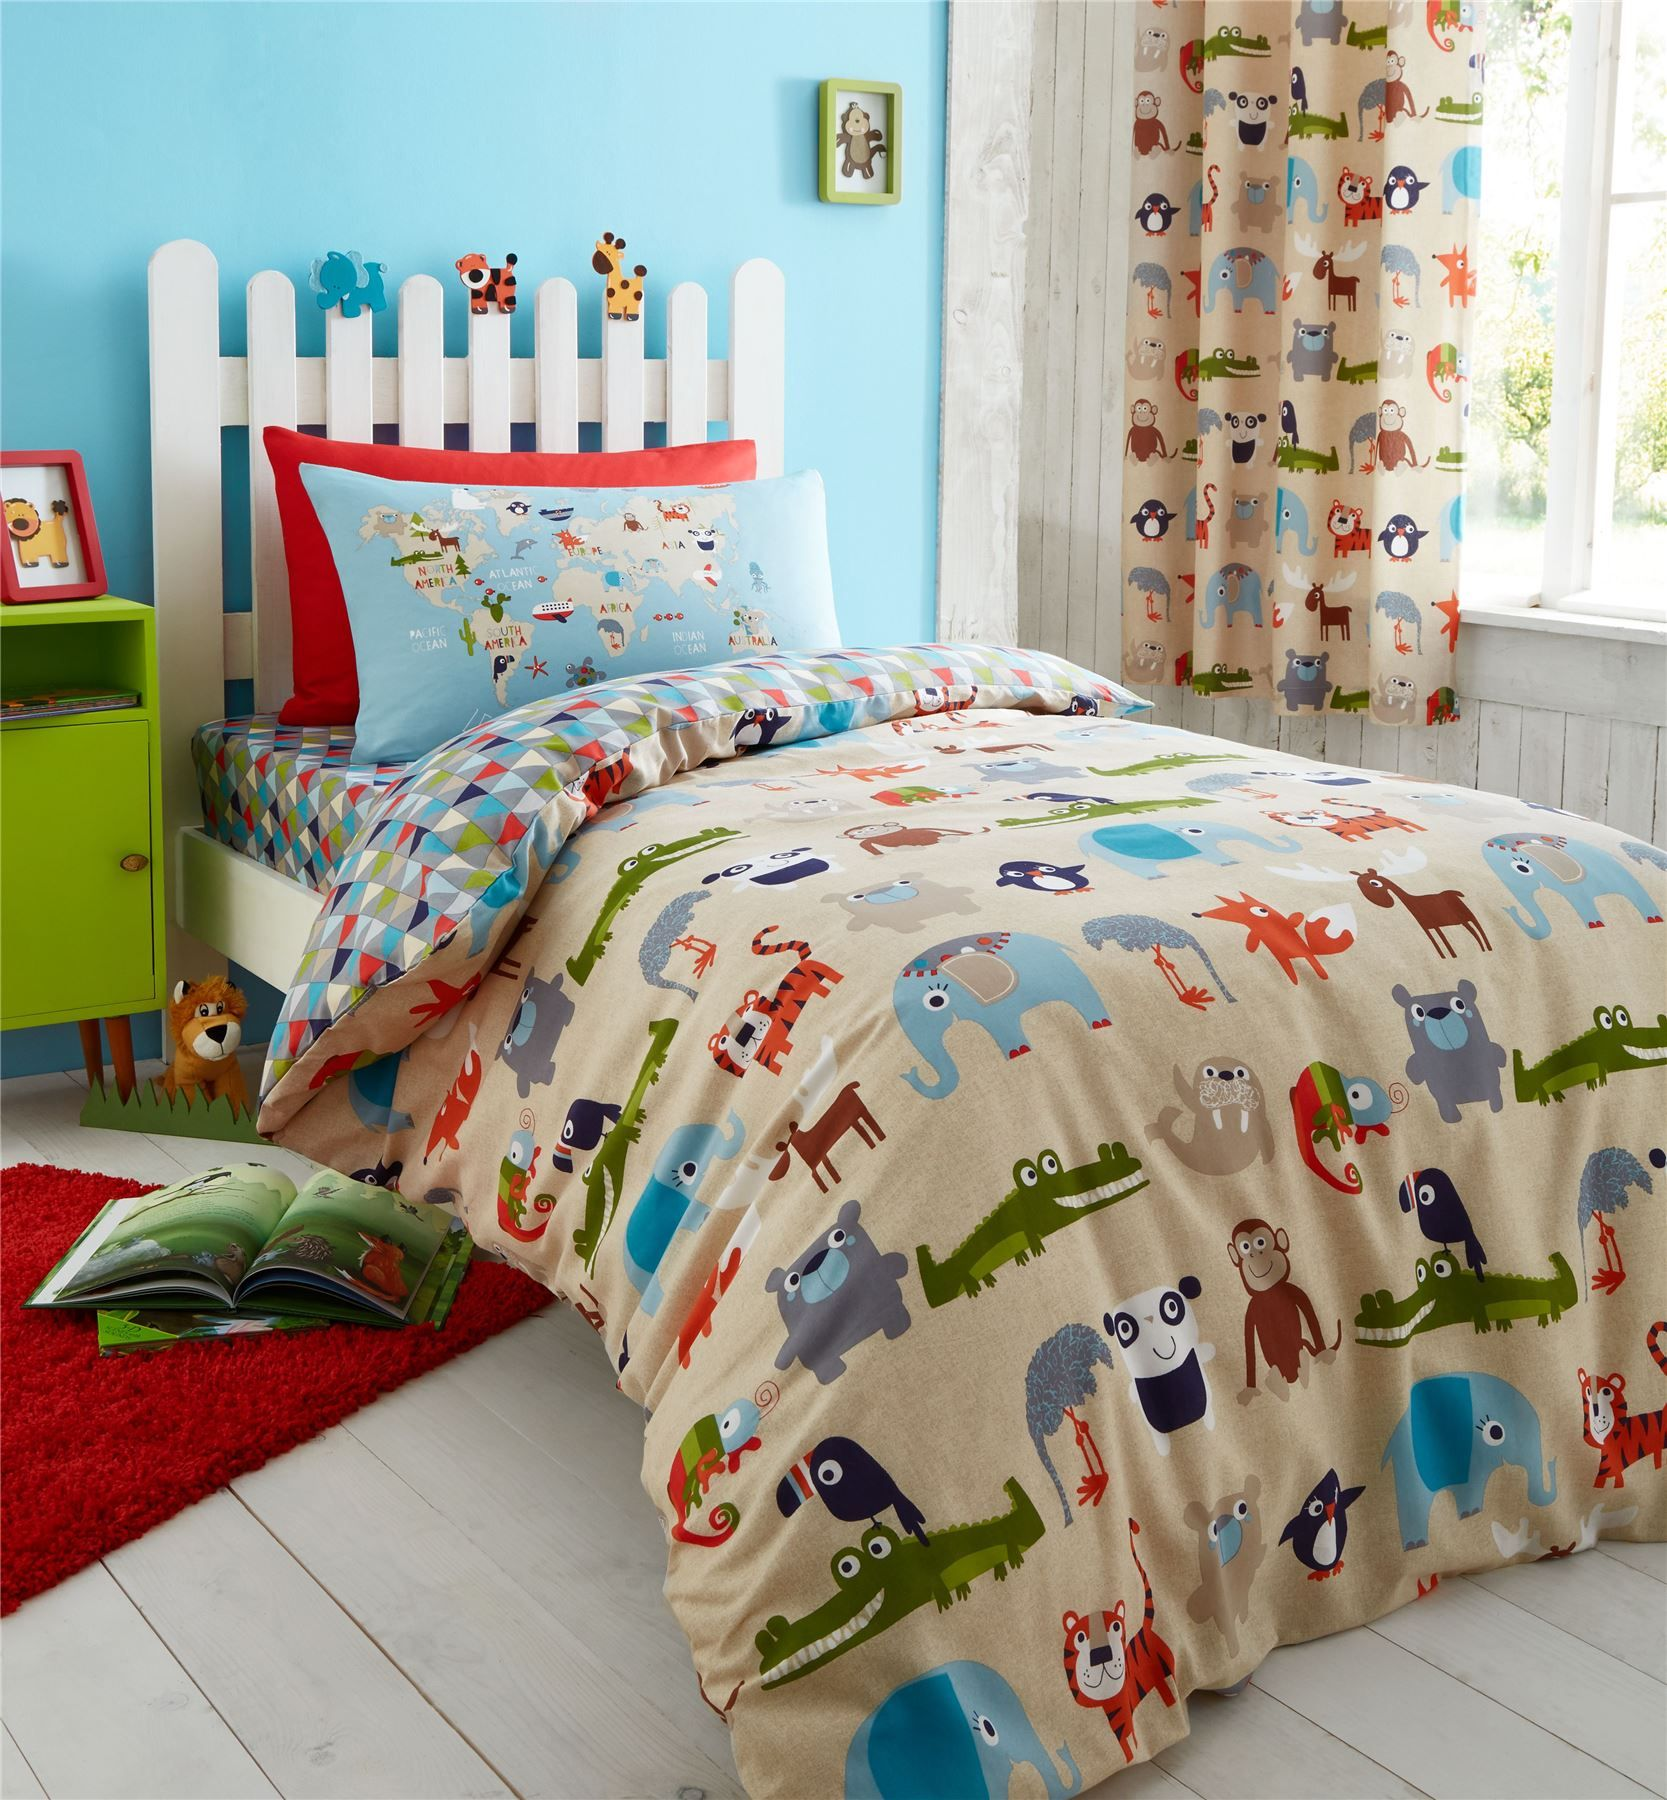 Nice Bring Some Jungle Fun To The Bedroom With This Fantastic Animal Kingdom Duvet  Set. Great Ideas